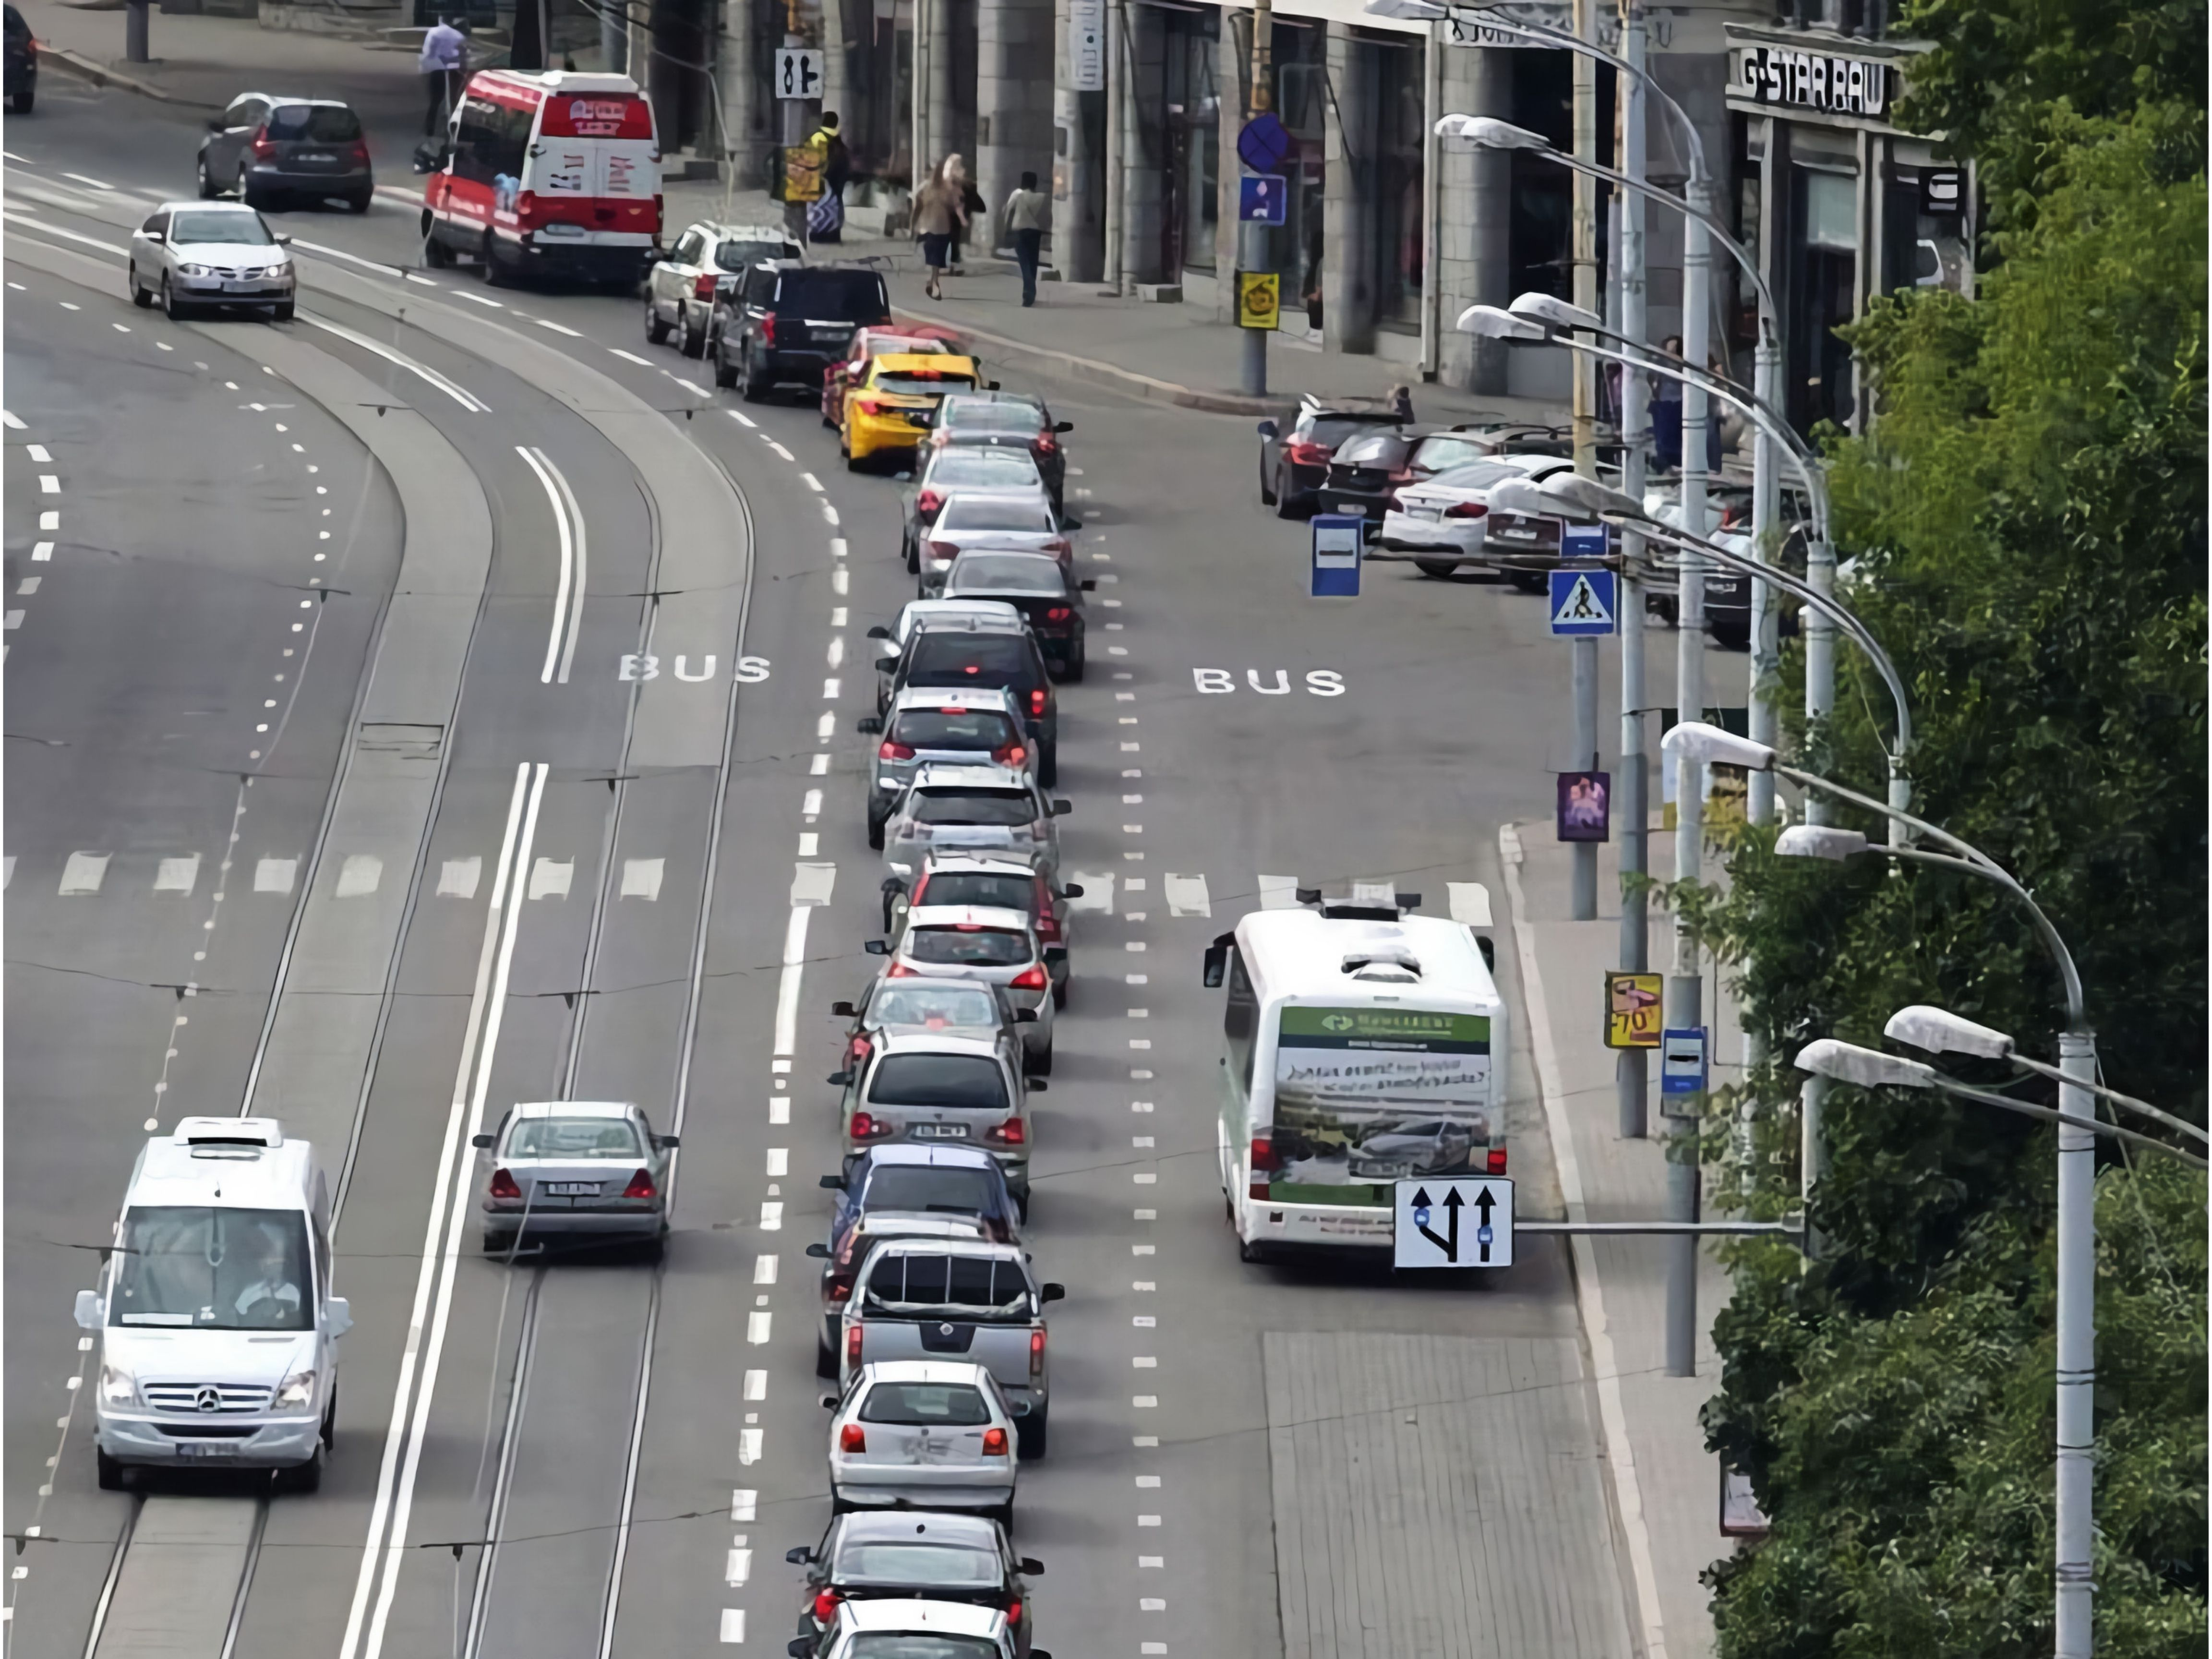 Congestion caused by ineffective traffic management